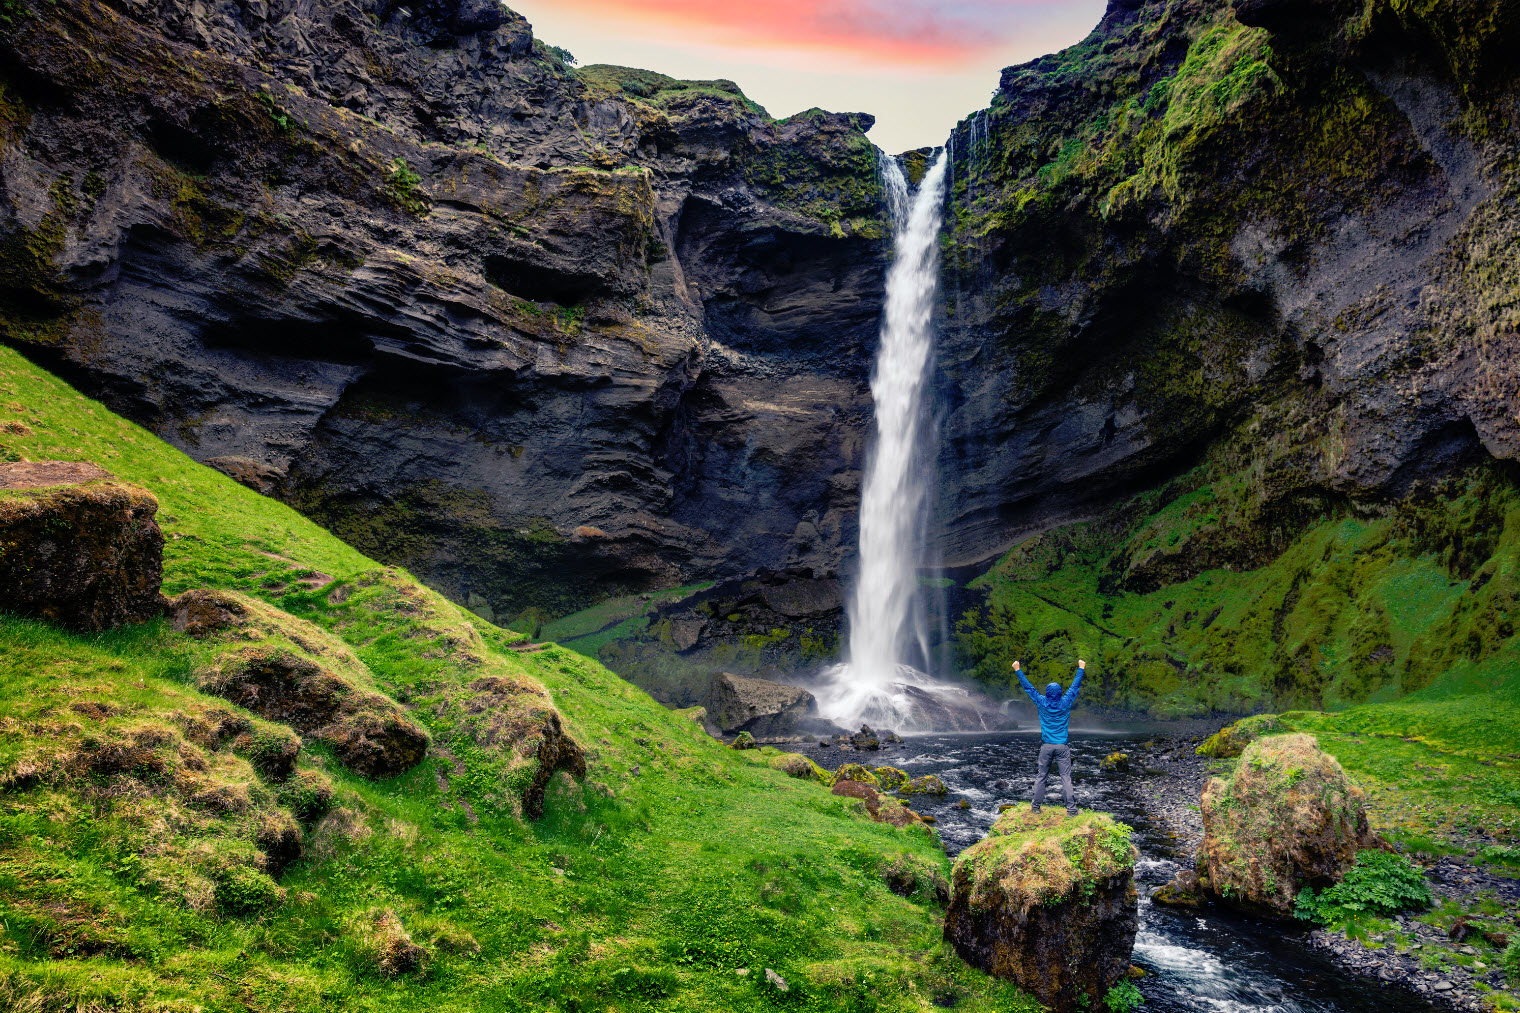 Kvernufoss waterfall is located on the South coast of Iceland